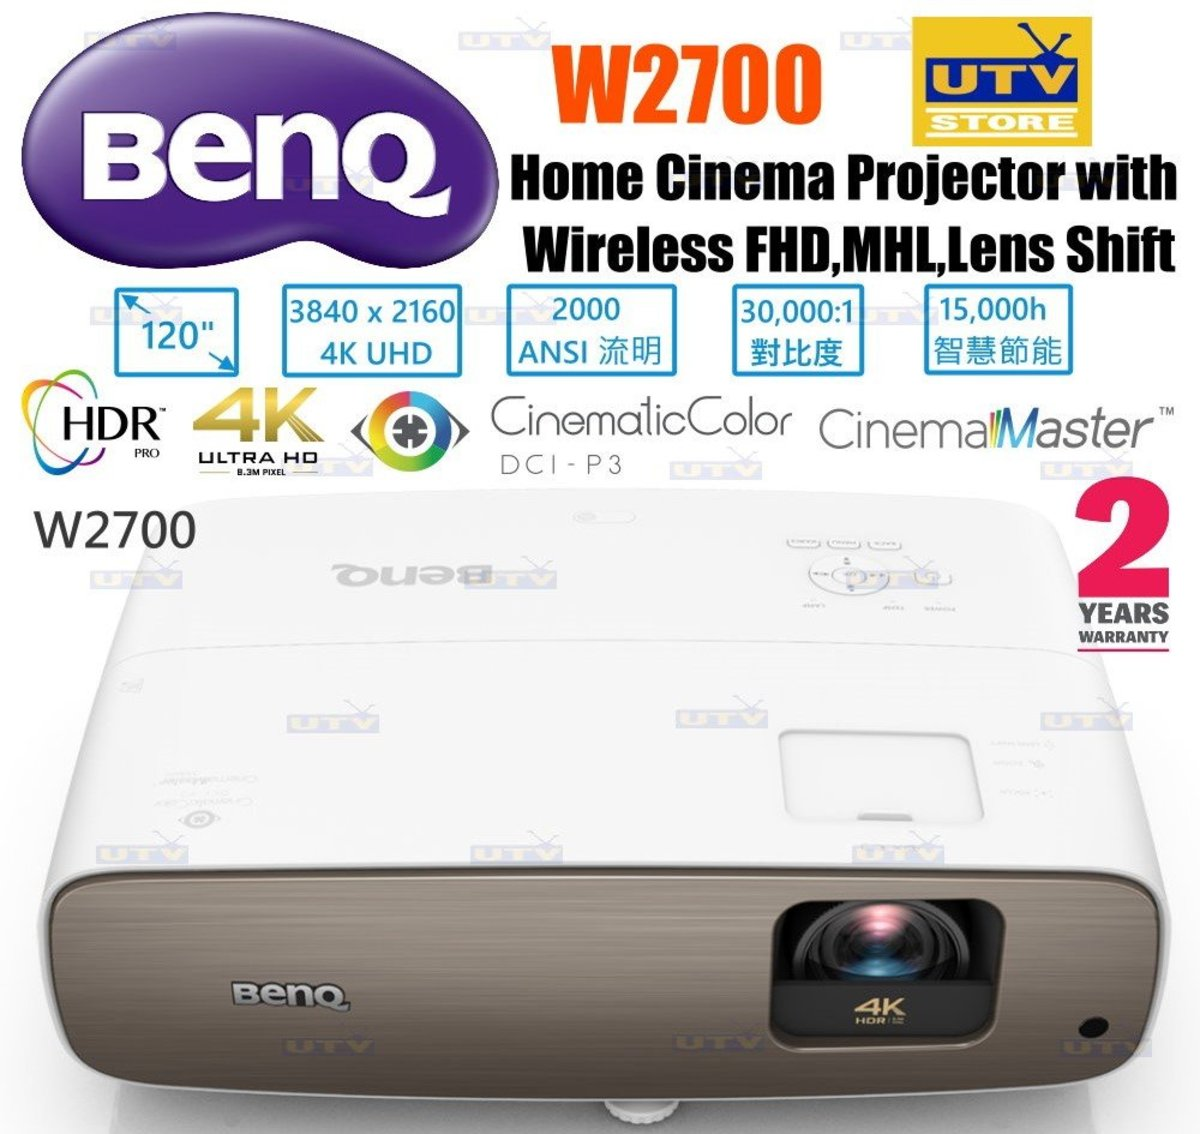 W2700 True 4K UHD Projector with DCI-P3/Rec.709 and HDR-PRO